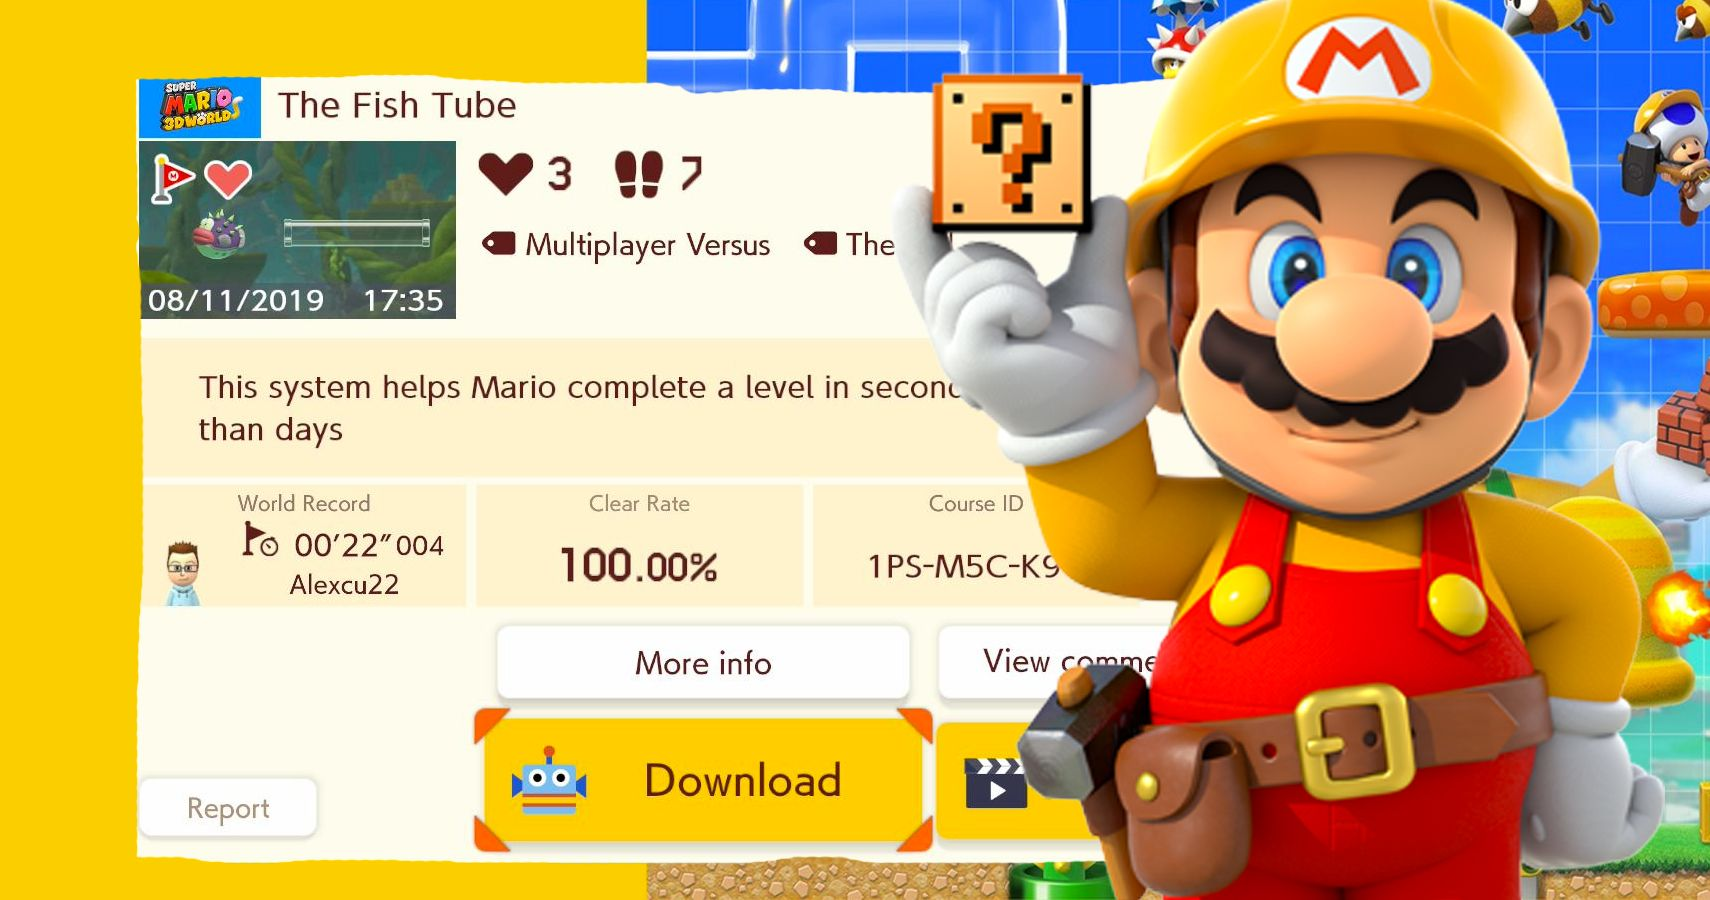 Someone Turned The Fish Tube Into A Mario Maker 2 Level